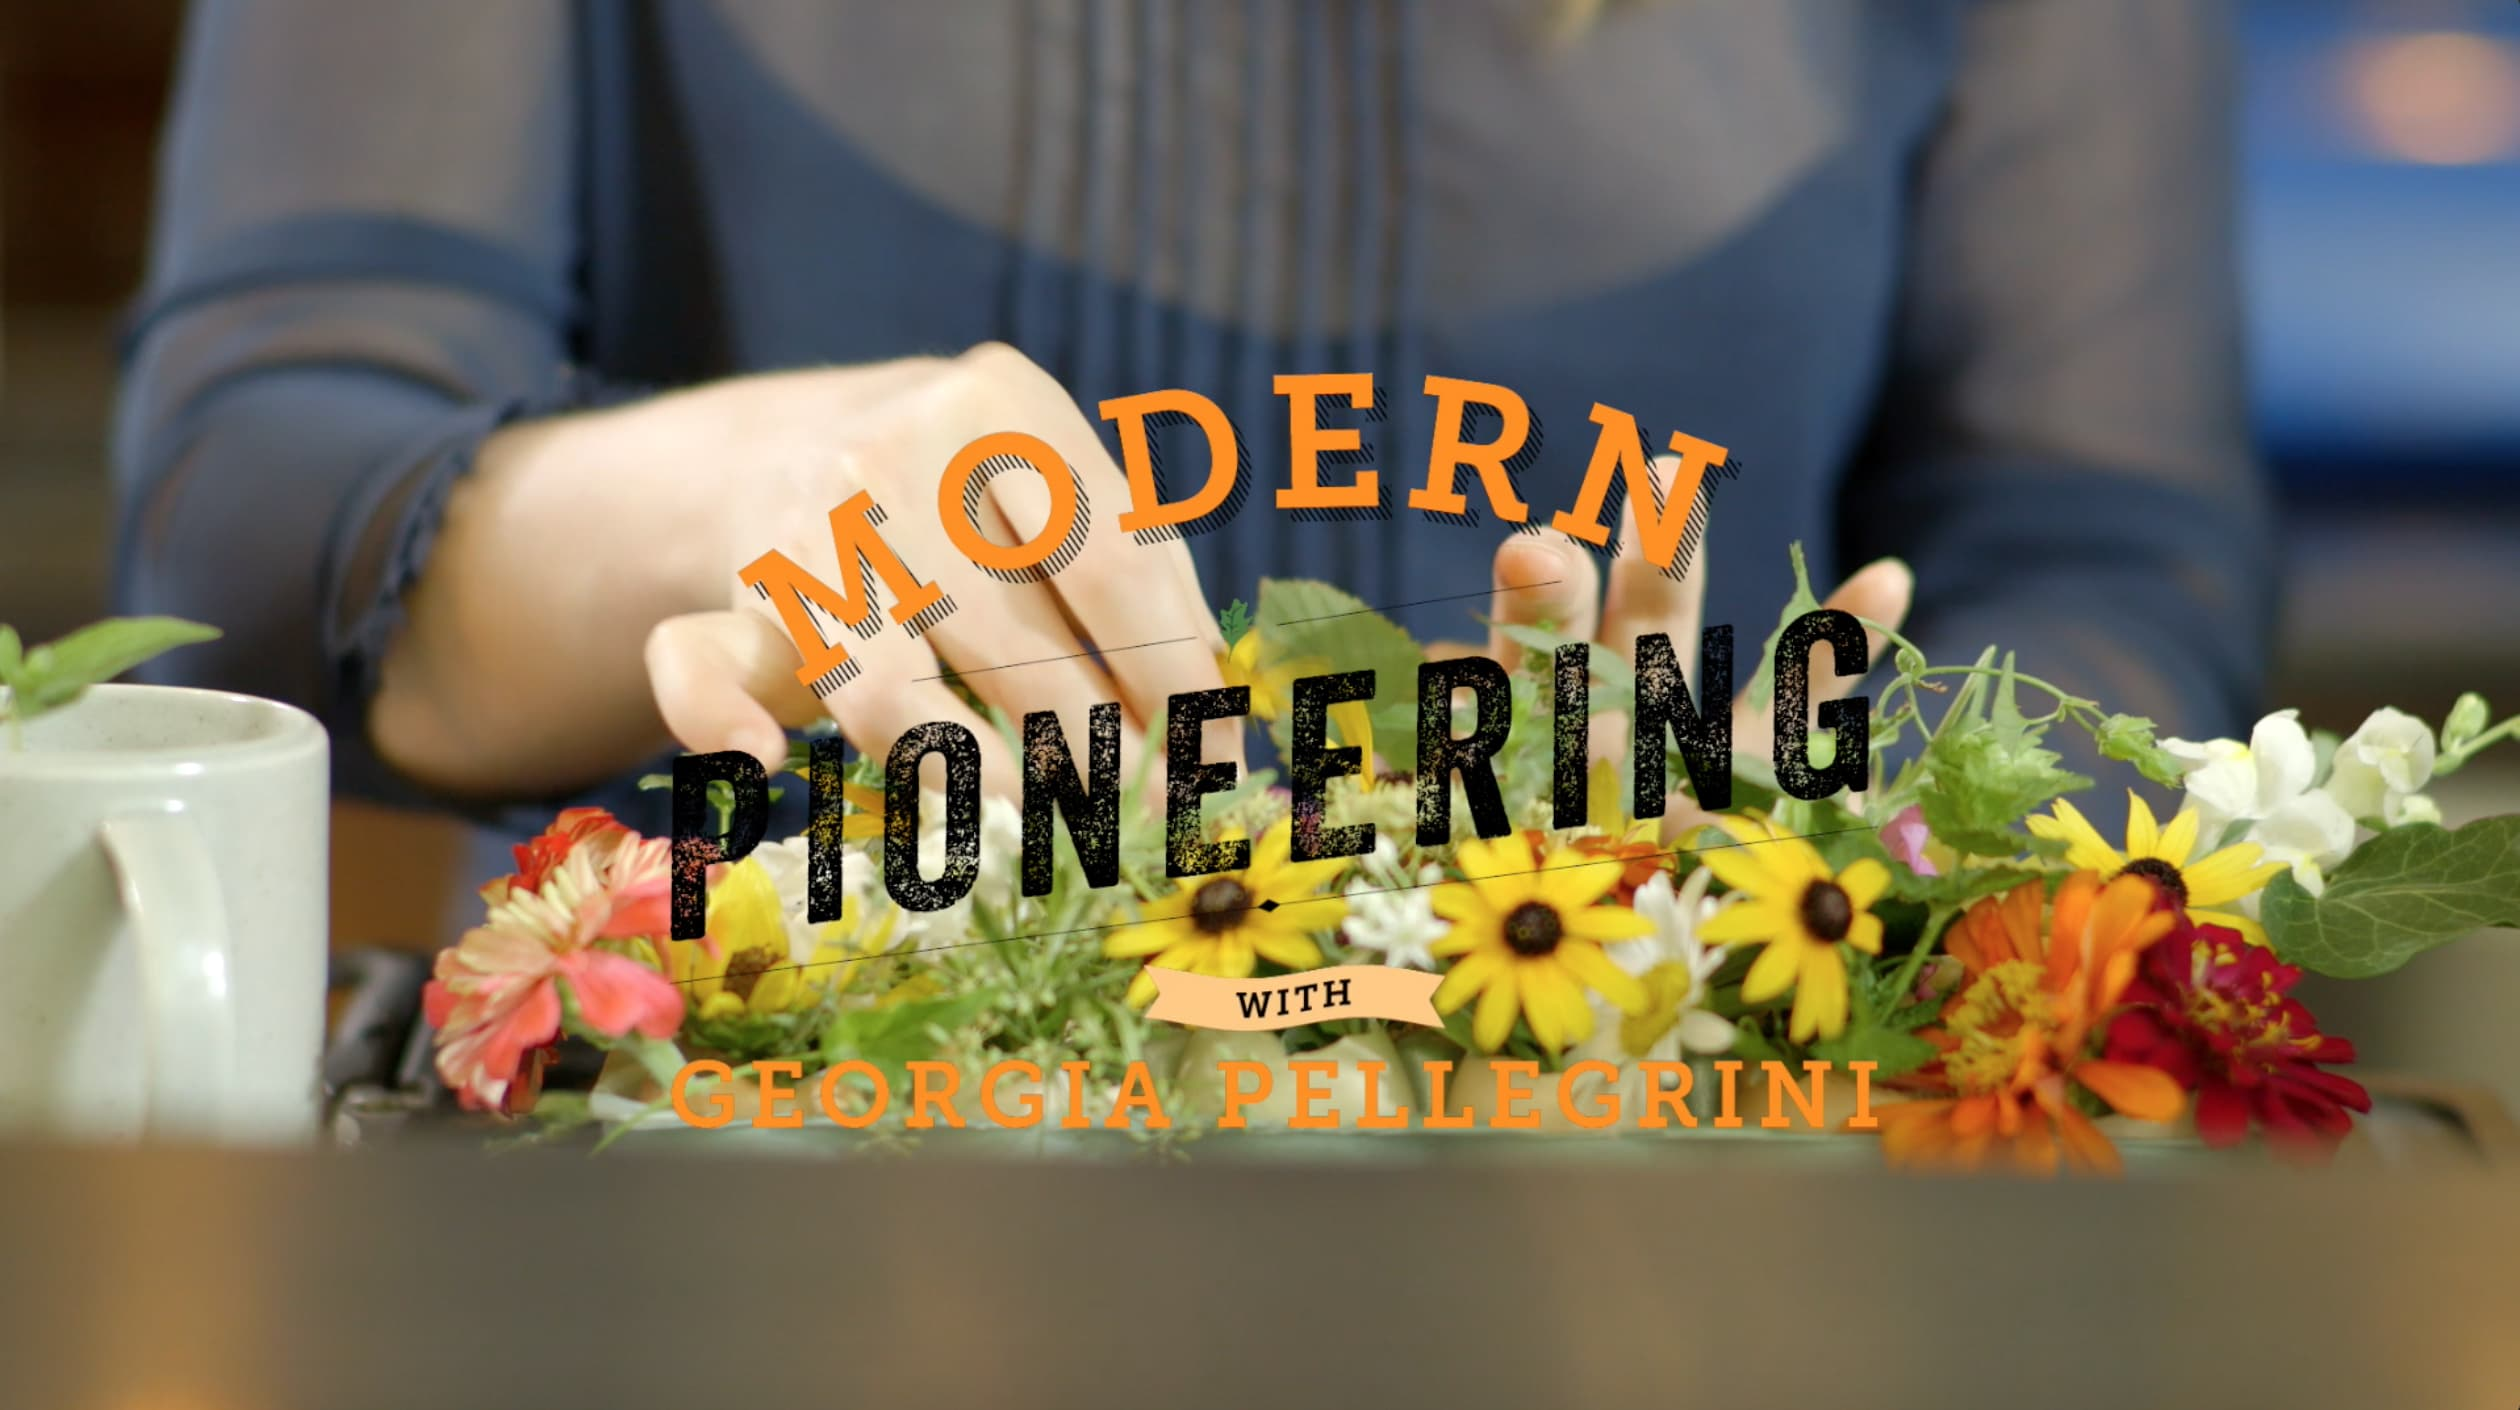 Modern Pioneering Video: Eggshell Seedling Planters